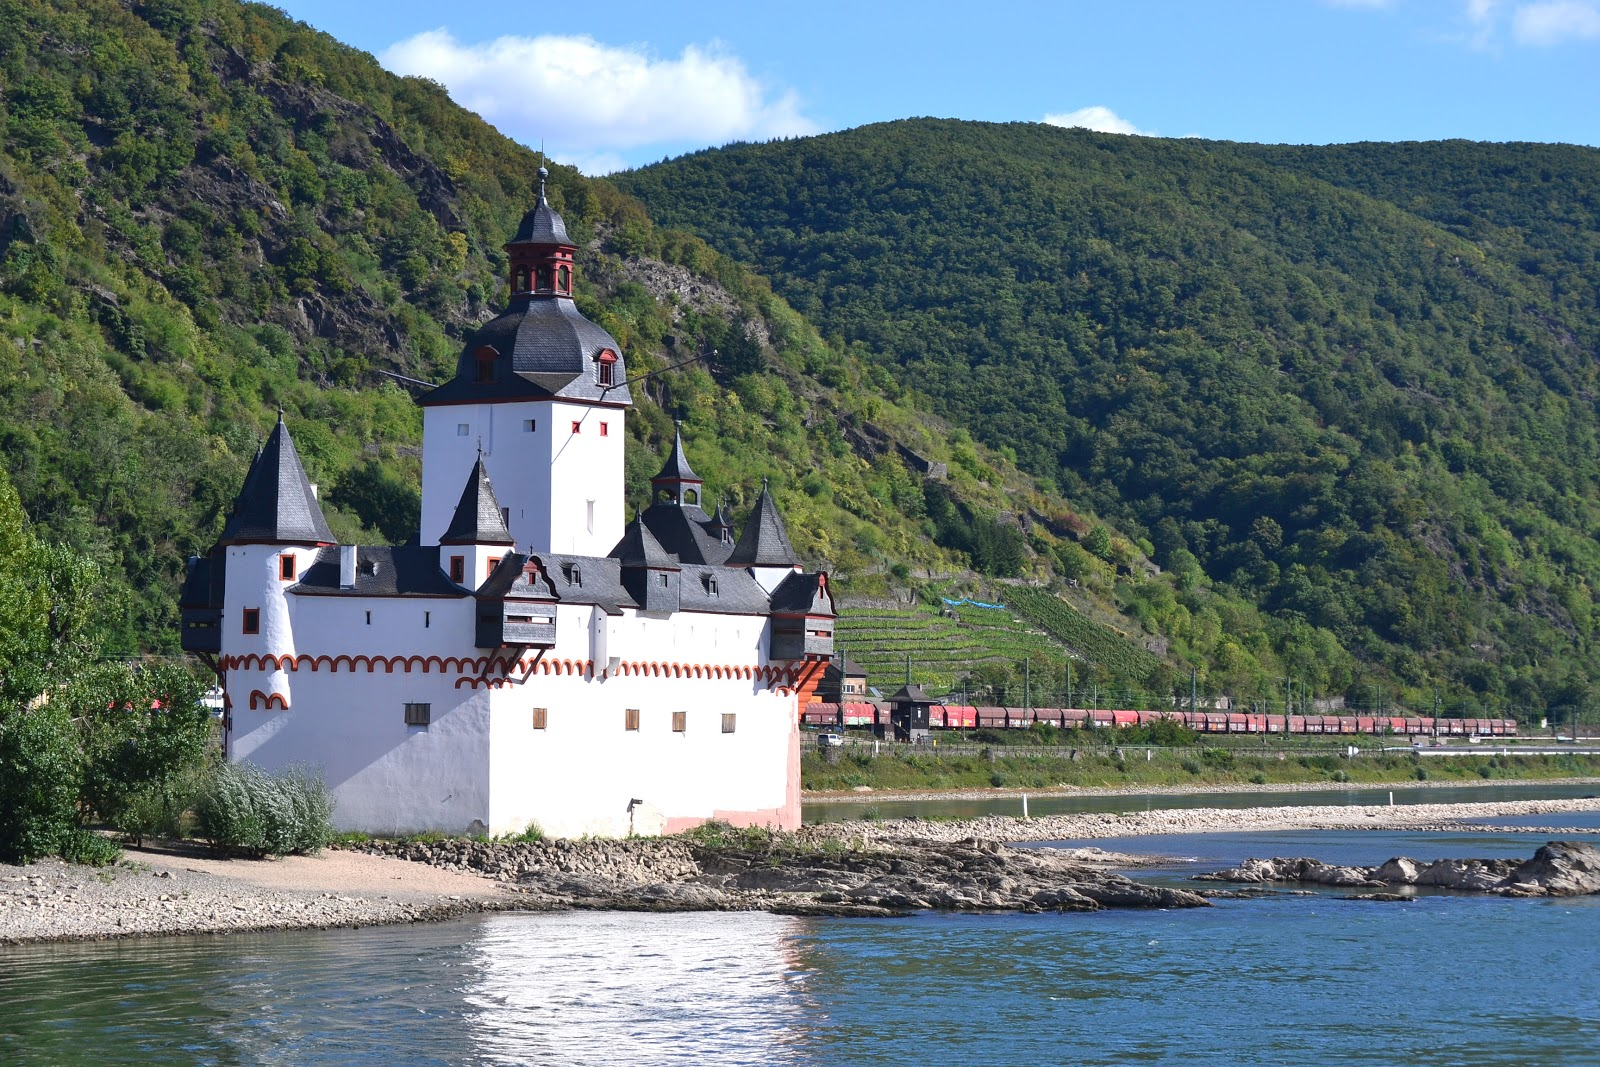 Pfalzgrafenstein Castle aka the Stone Ship resembles a passing steamer on the river.